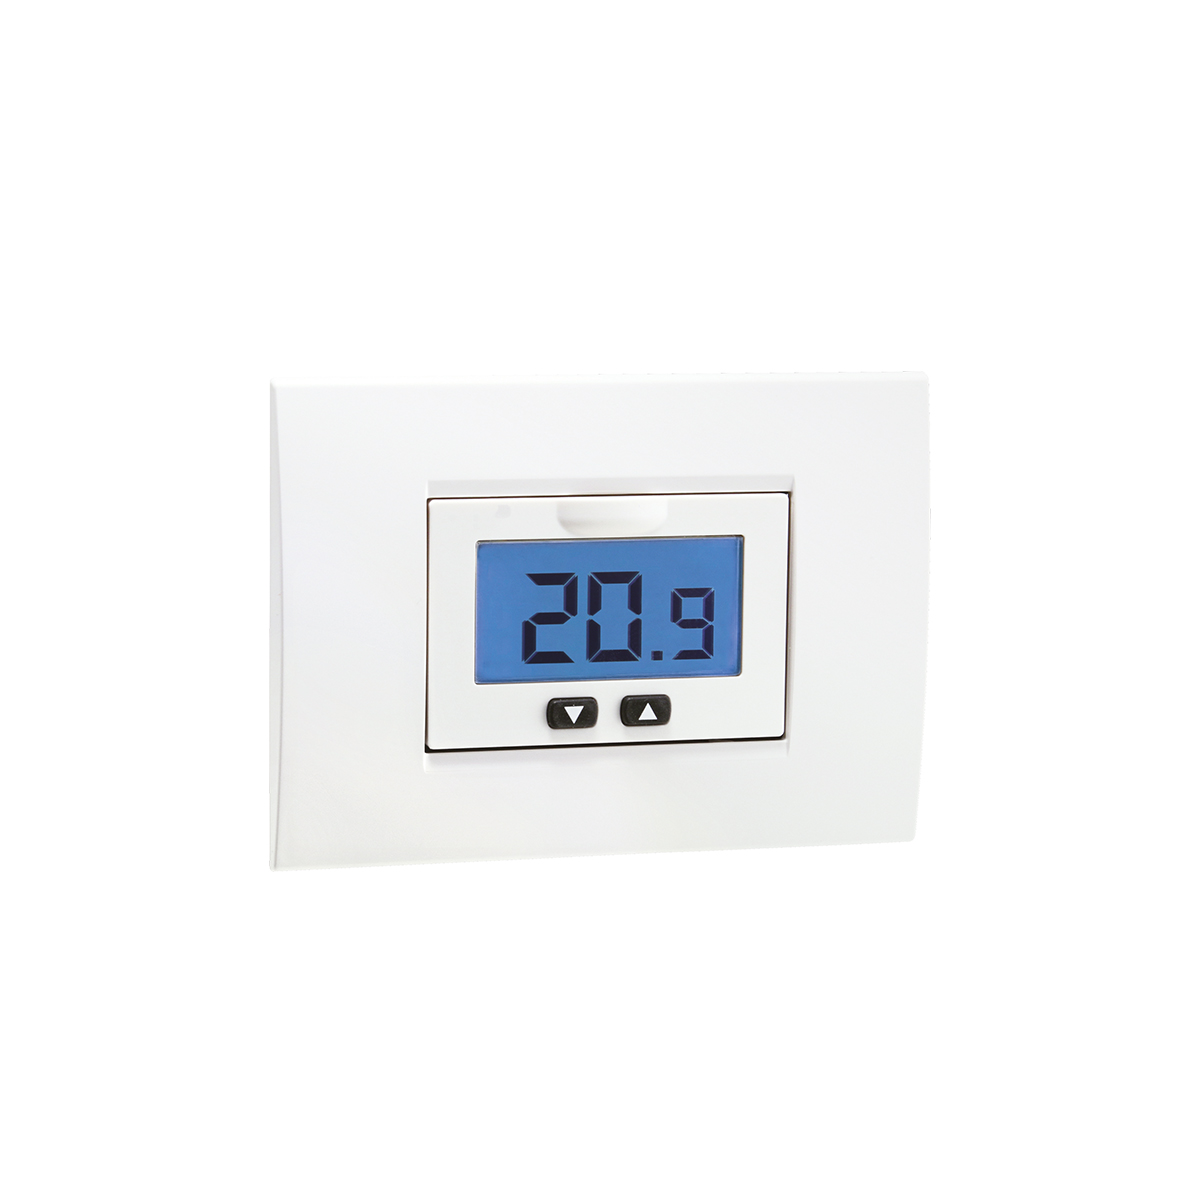 Flush-mounting thermostat with LCD display and battery-supply